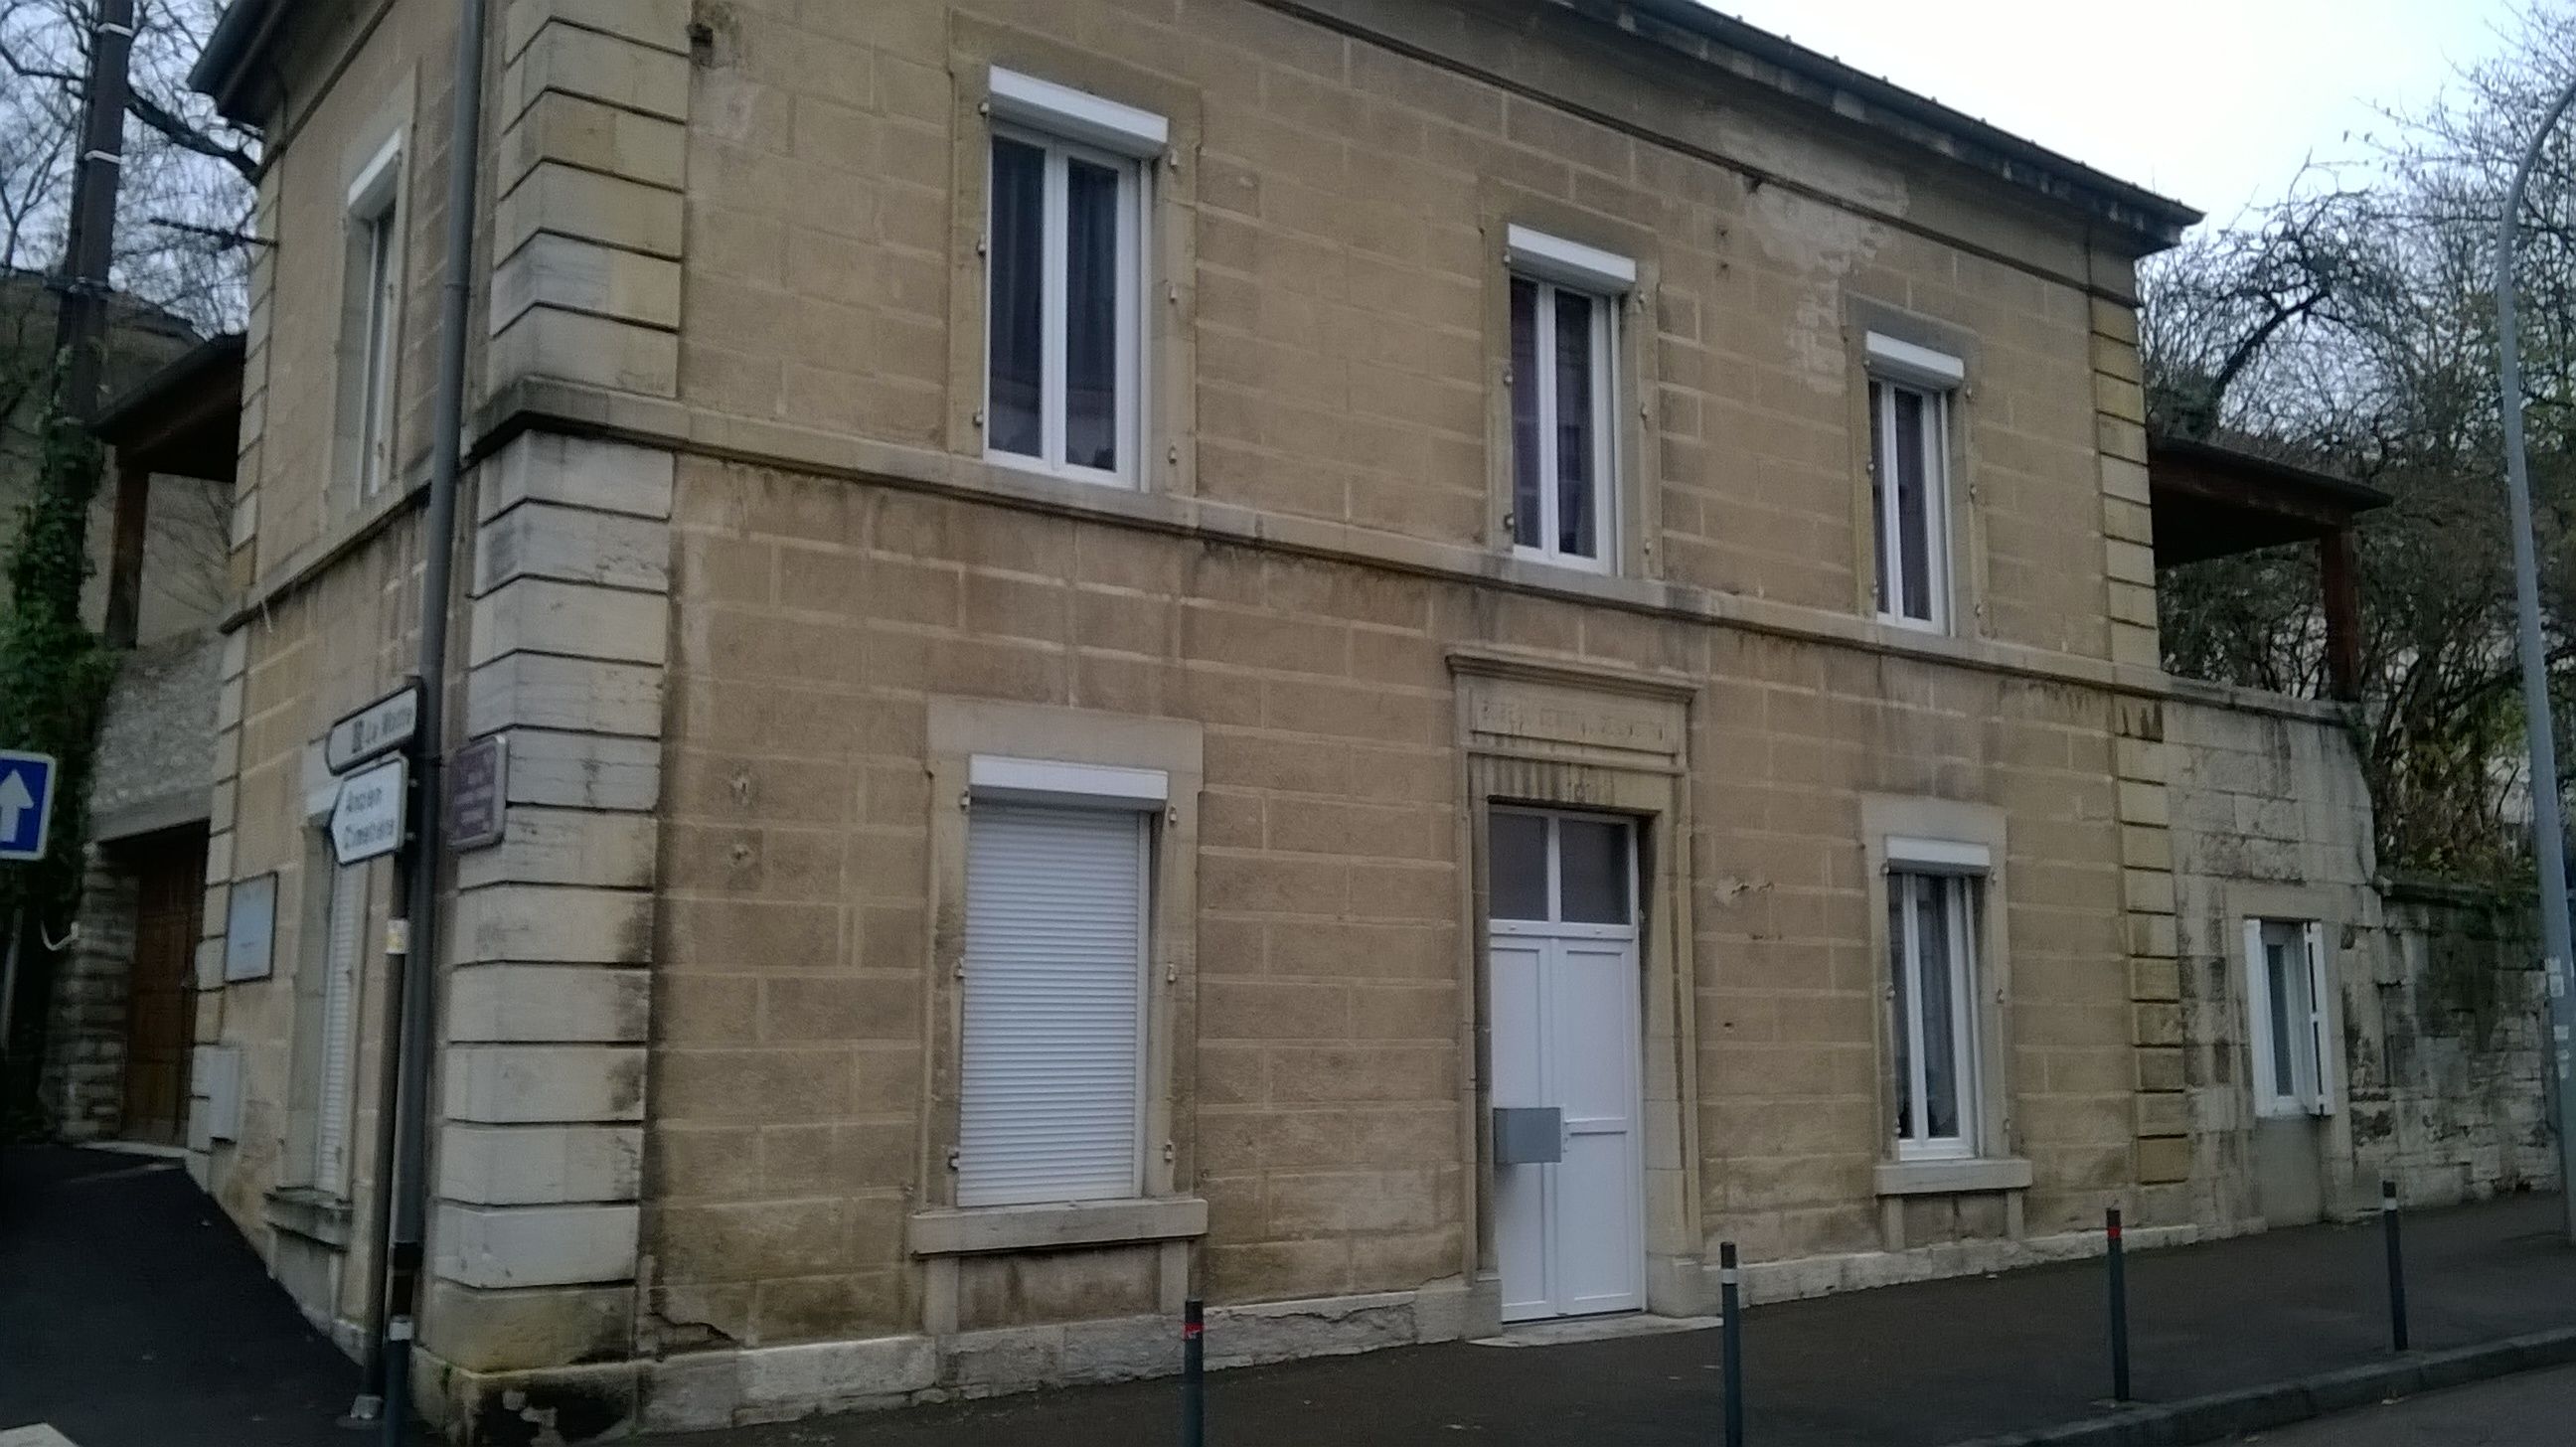 File:vesoul ancien bureau central de loctroi.jpg wikimedia commons